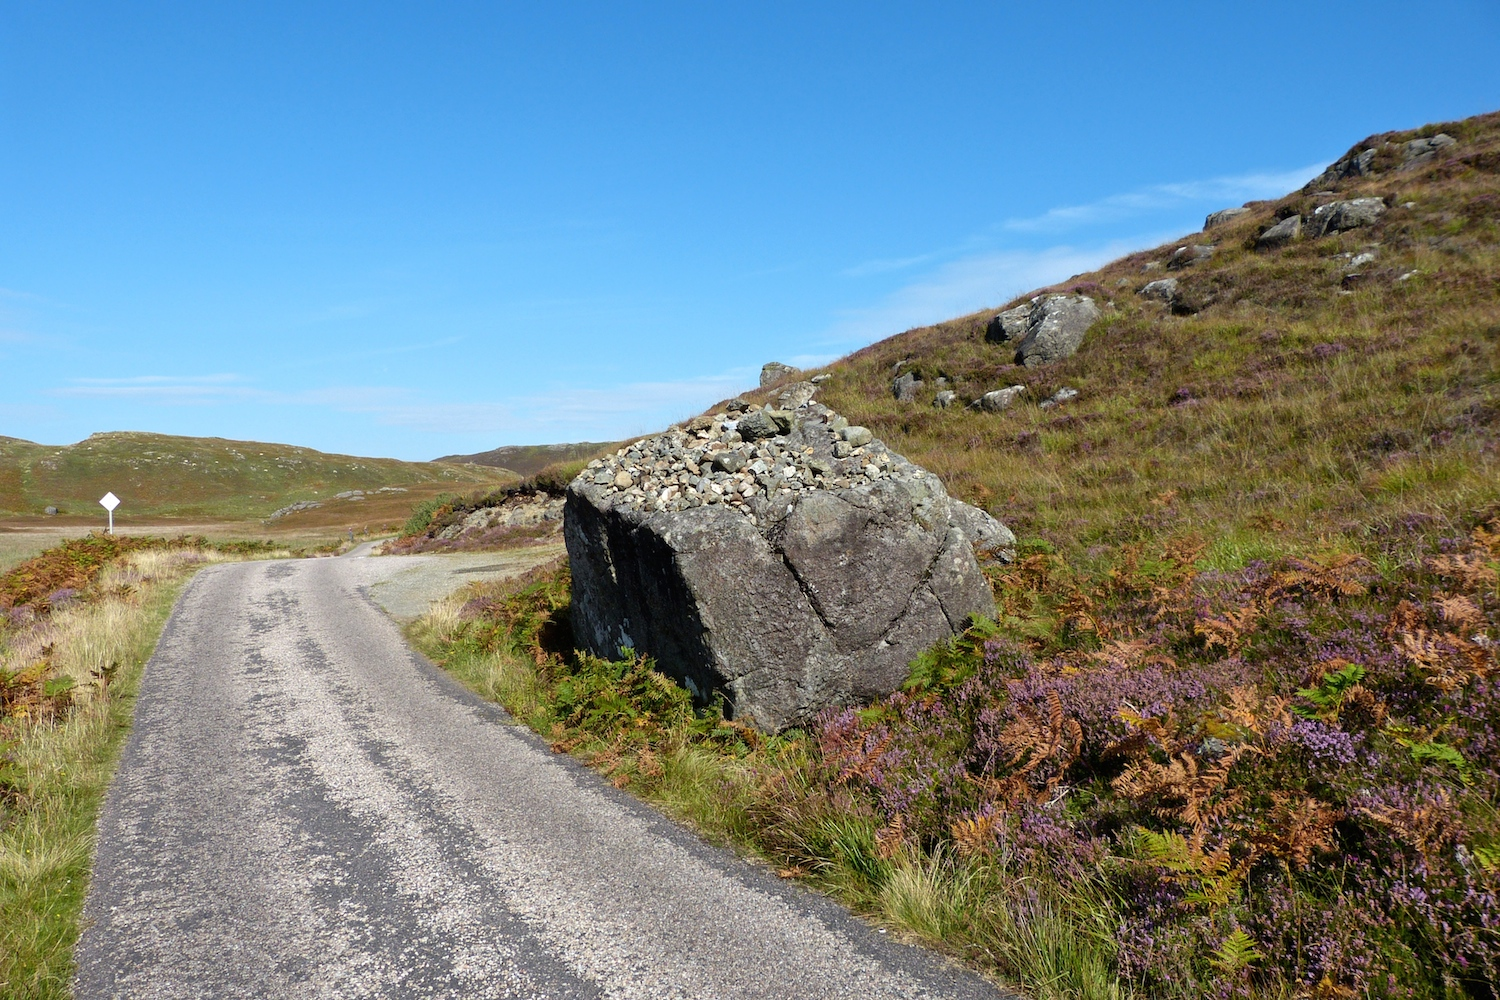 Stone by Creag an Airgid